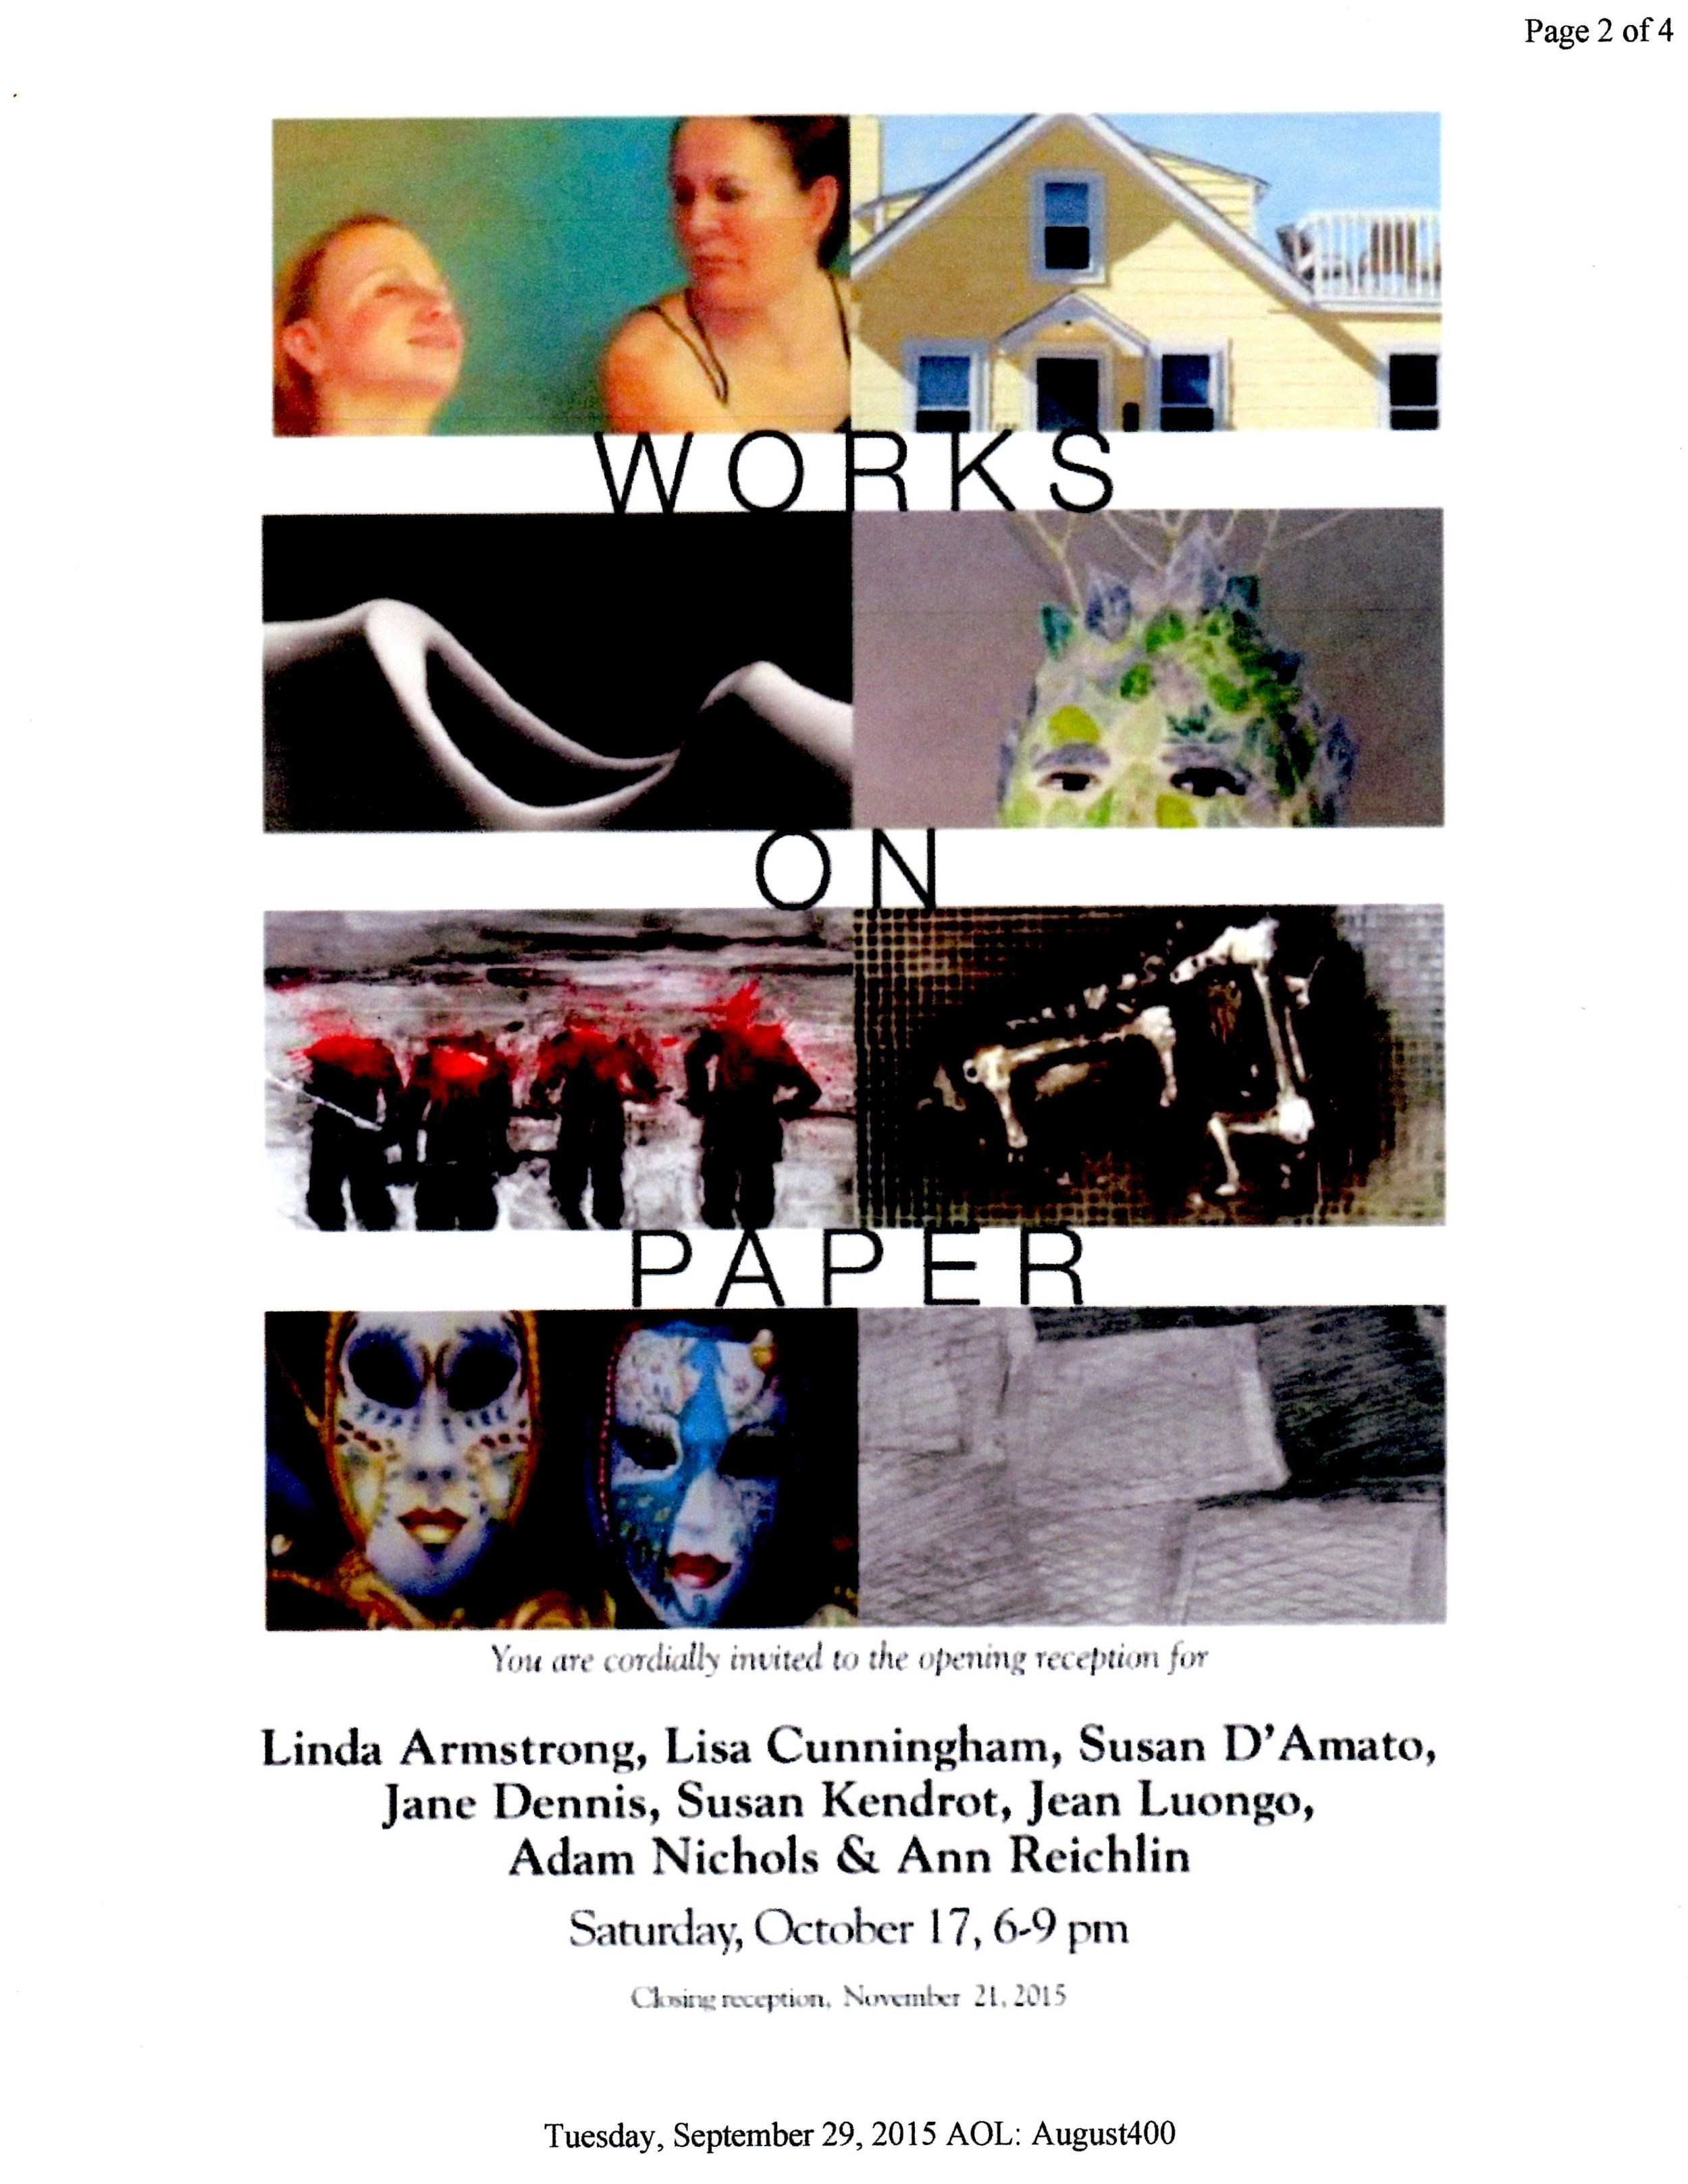 Works on Paper October 17 - November 21, 2015      Windsor Whip Works Art Center, Windsor, NY